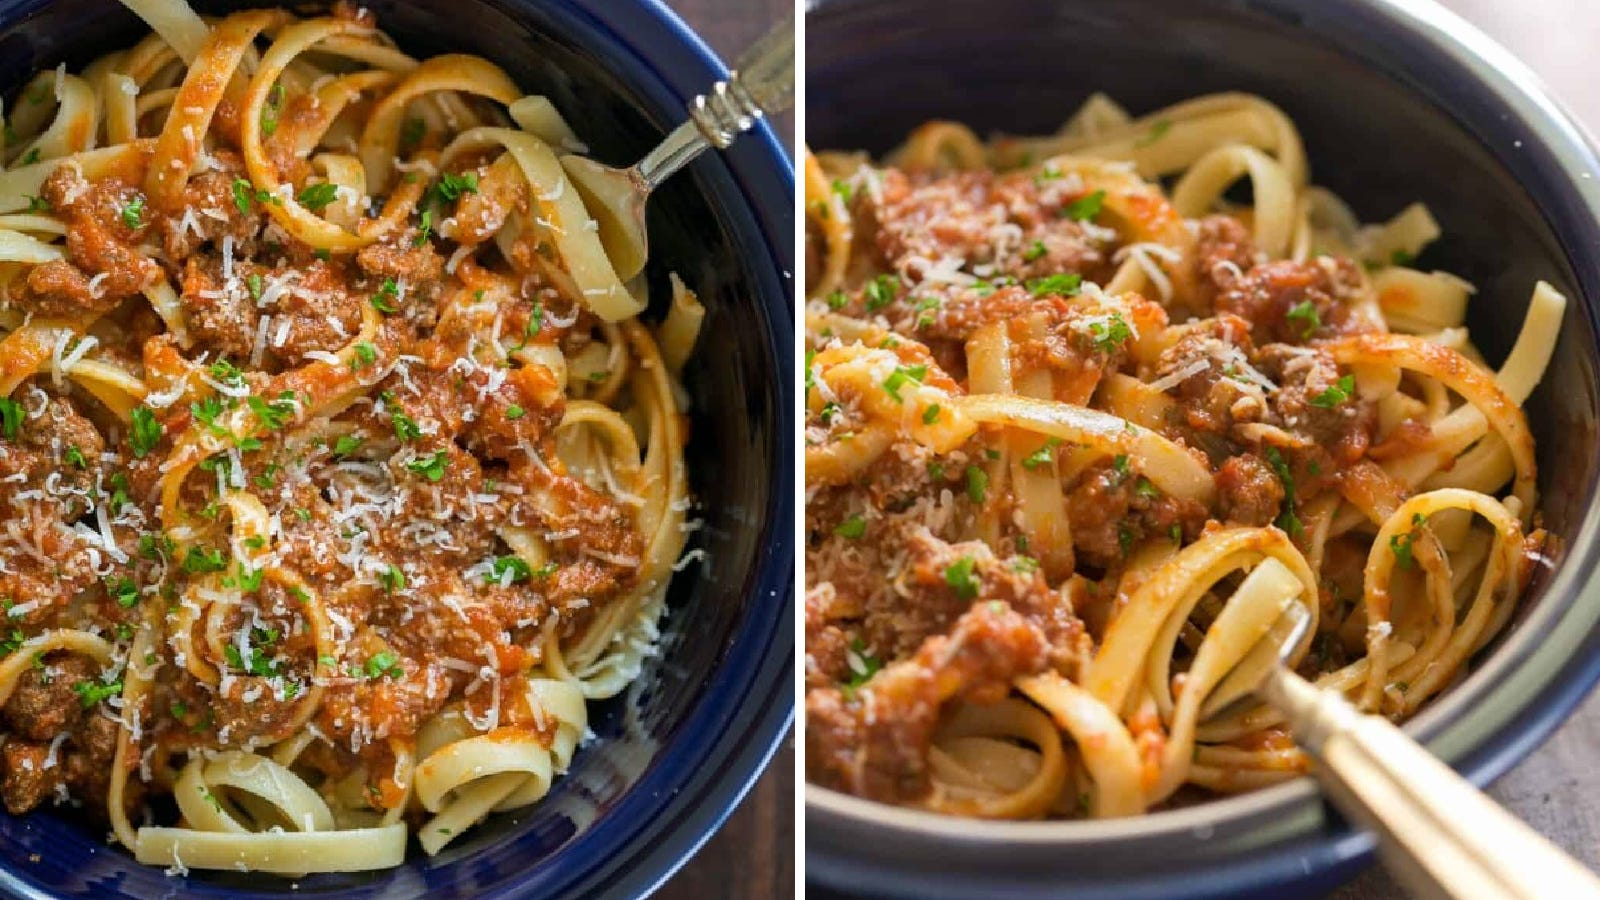 Two images of bolognese sauce topped over pasta ready to eat.